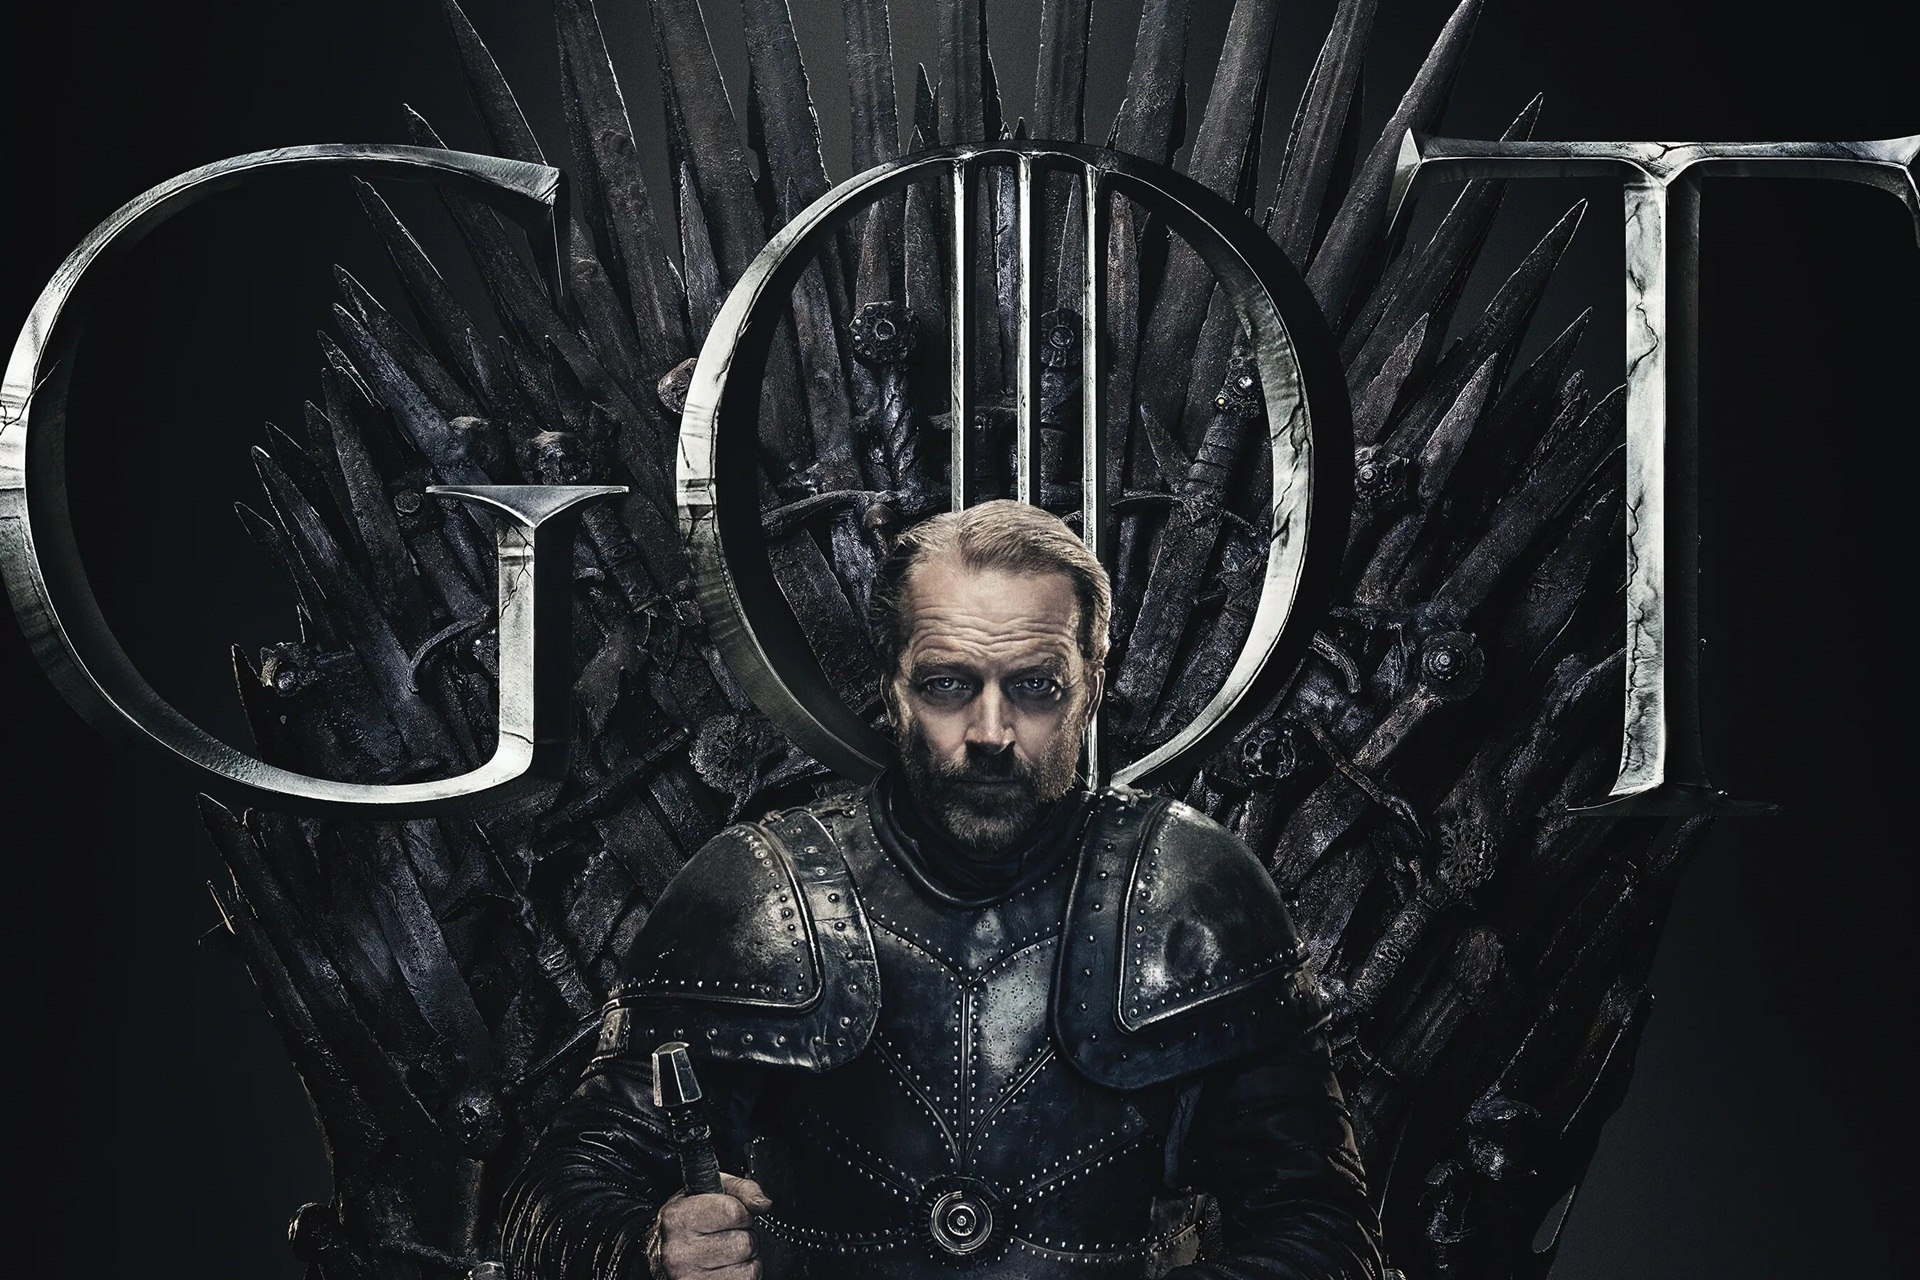 Game Of Thrones Wallpapers HD Backgrounds, Image, Pics, Photos Free